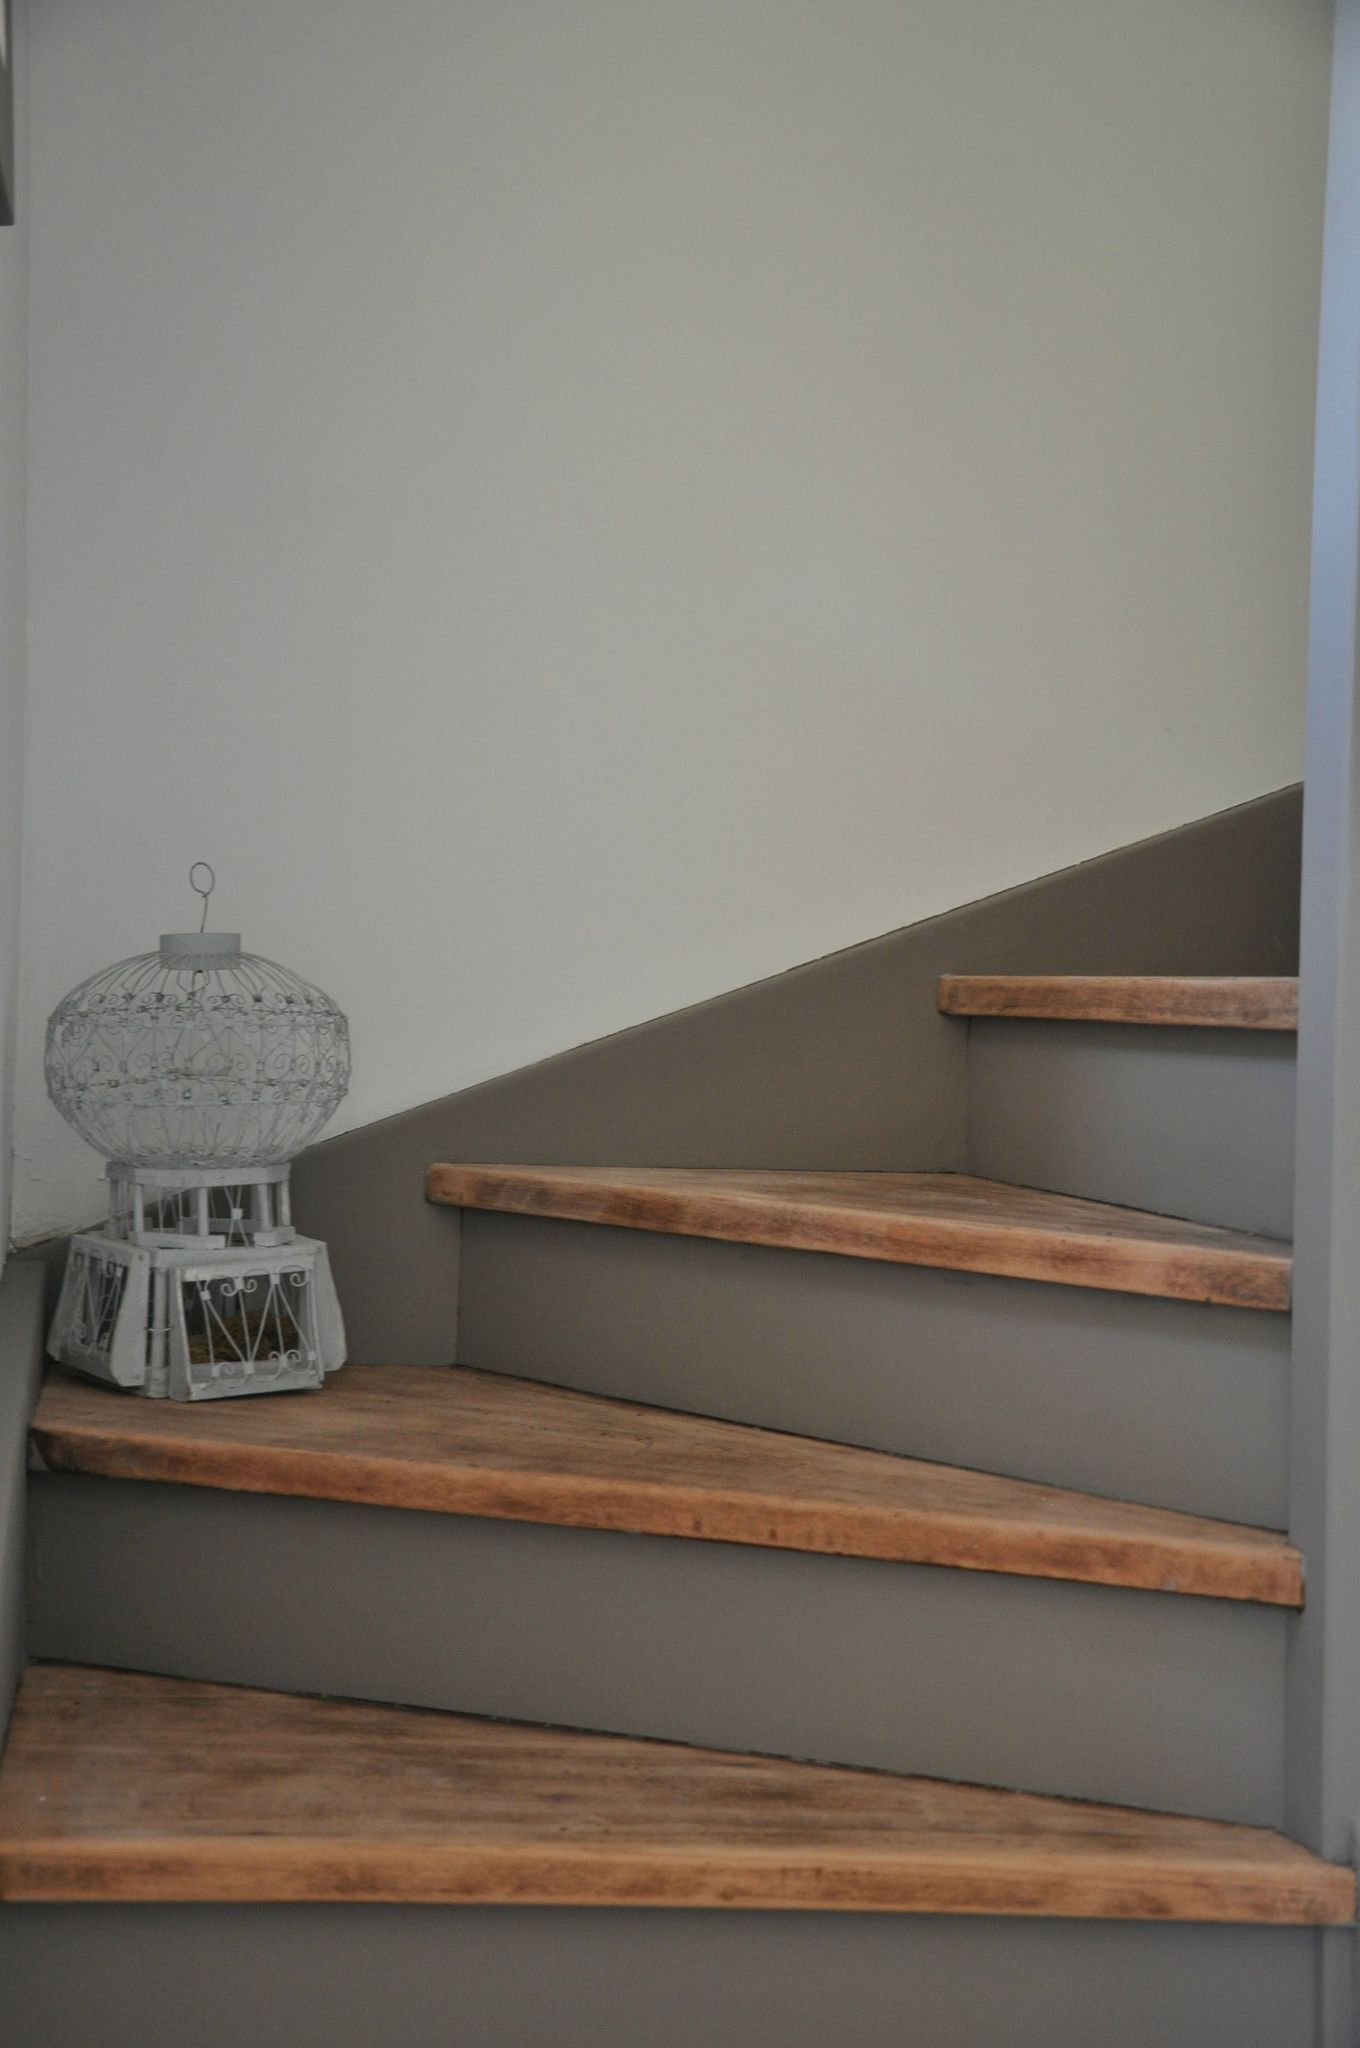 Stair Treads Left Bare Wood Waxed Risers Painted In Stormy Grey